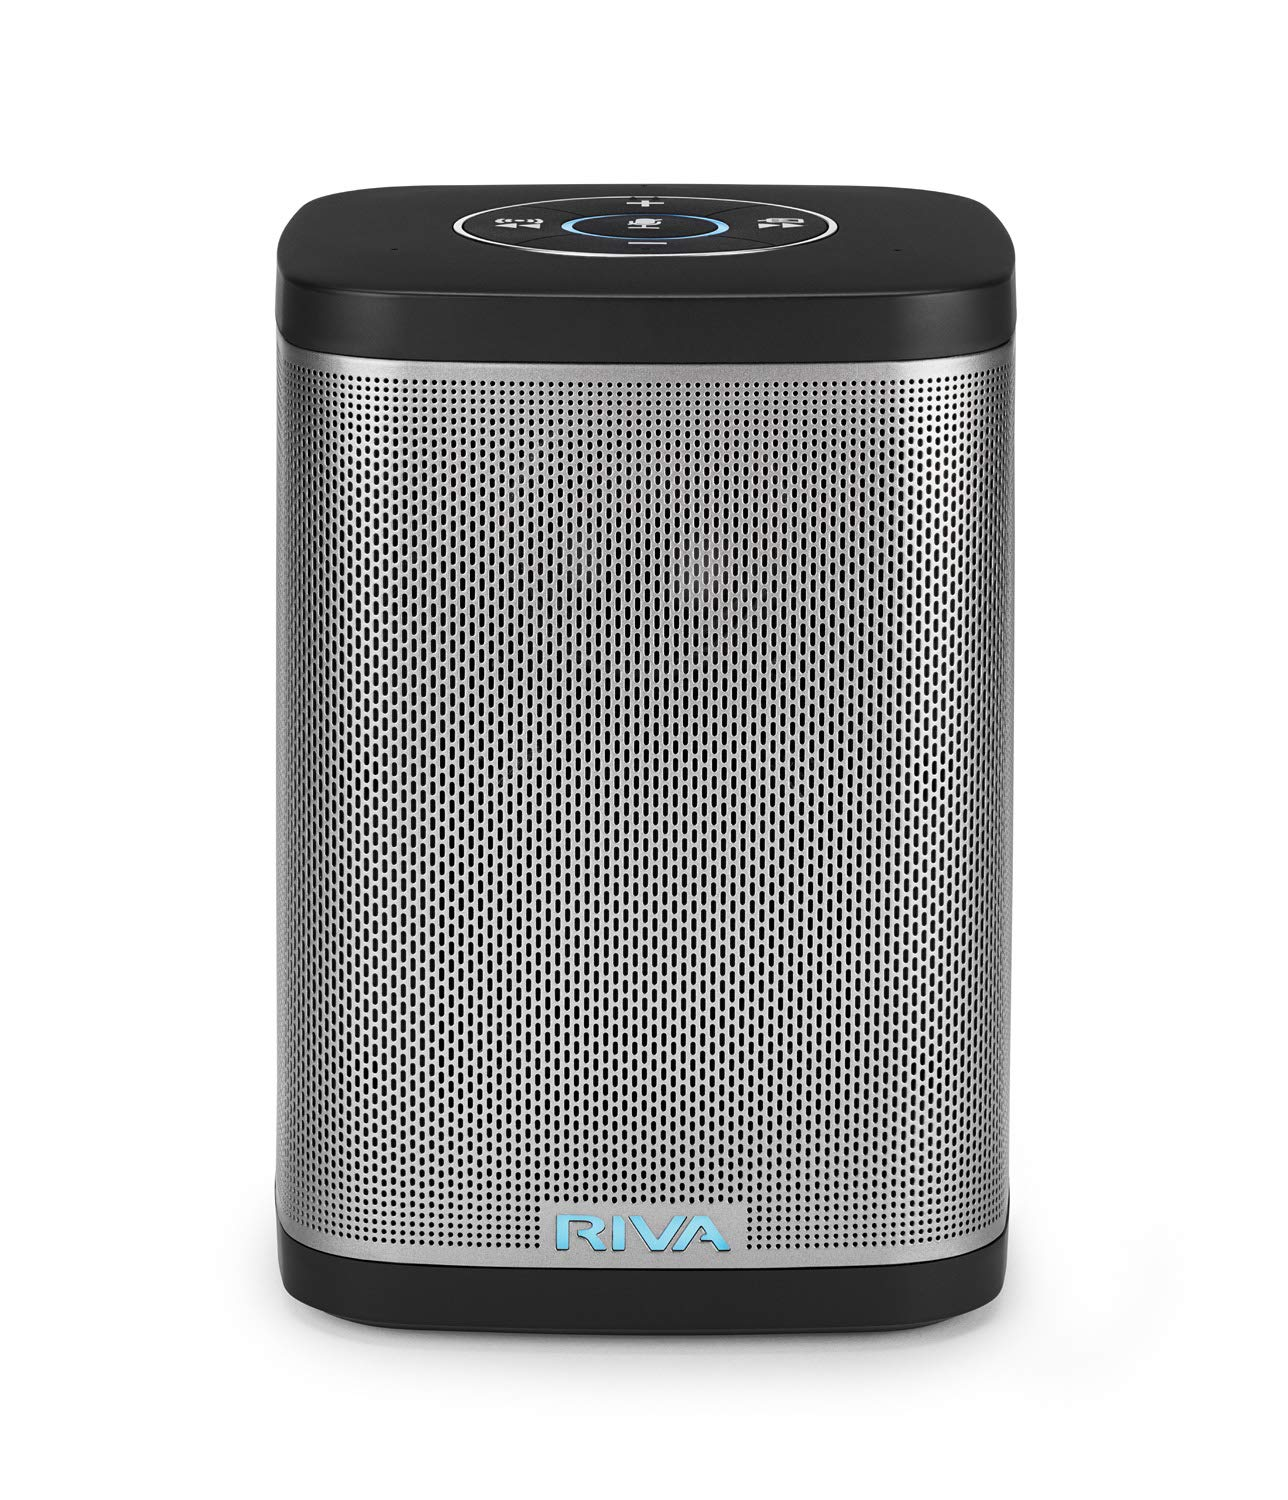 RIVA Concert with Alexa Built-in - Finally A Wireless Smart Speaker That Sounds Truly Amazing - WiFi, Airplay and Bluetooth Connectivity, Splash Resistant and Optional Battery (Black) by RIVA